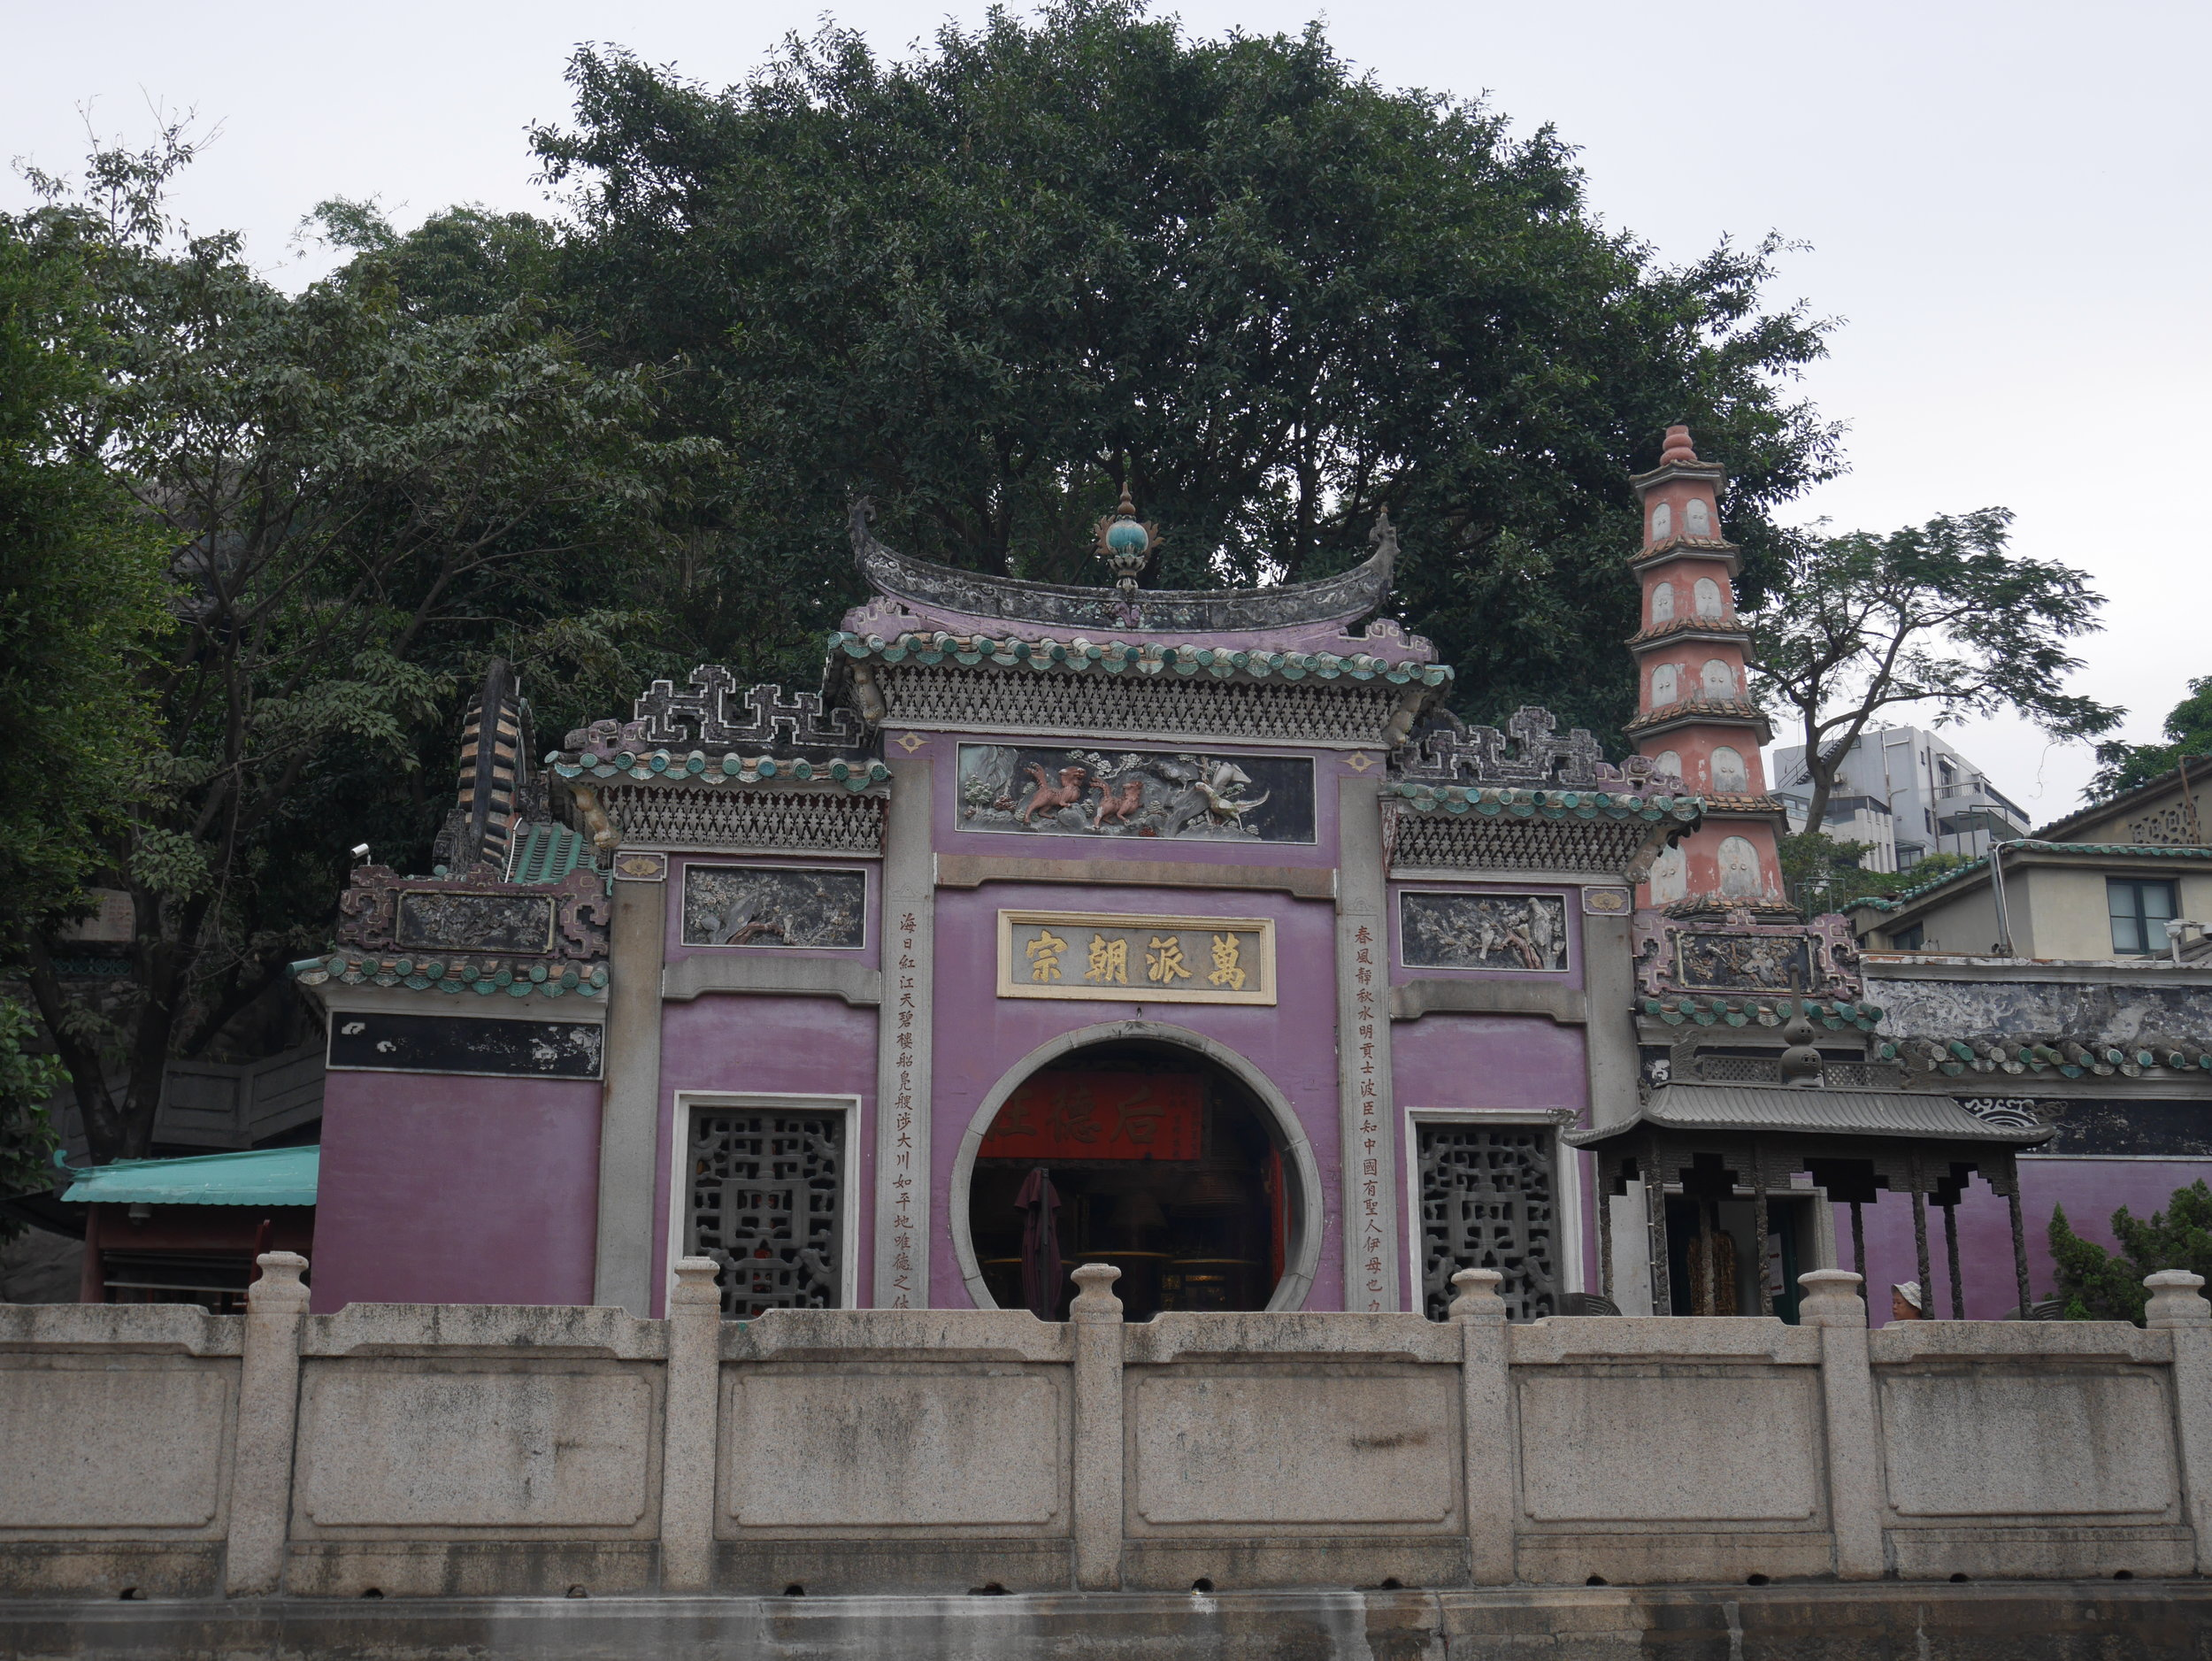 A-Ma Temple, the oldest temple in Macau